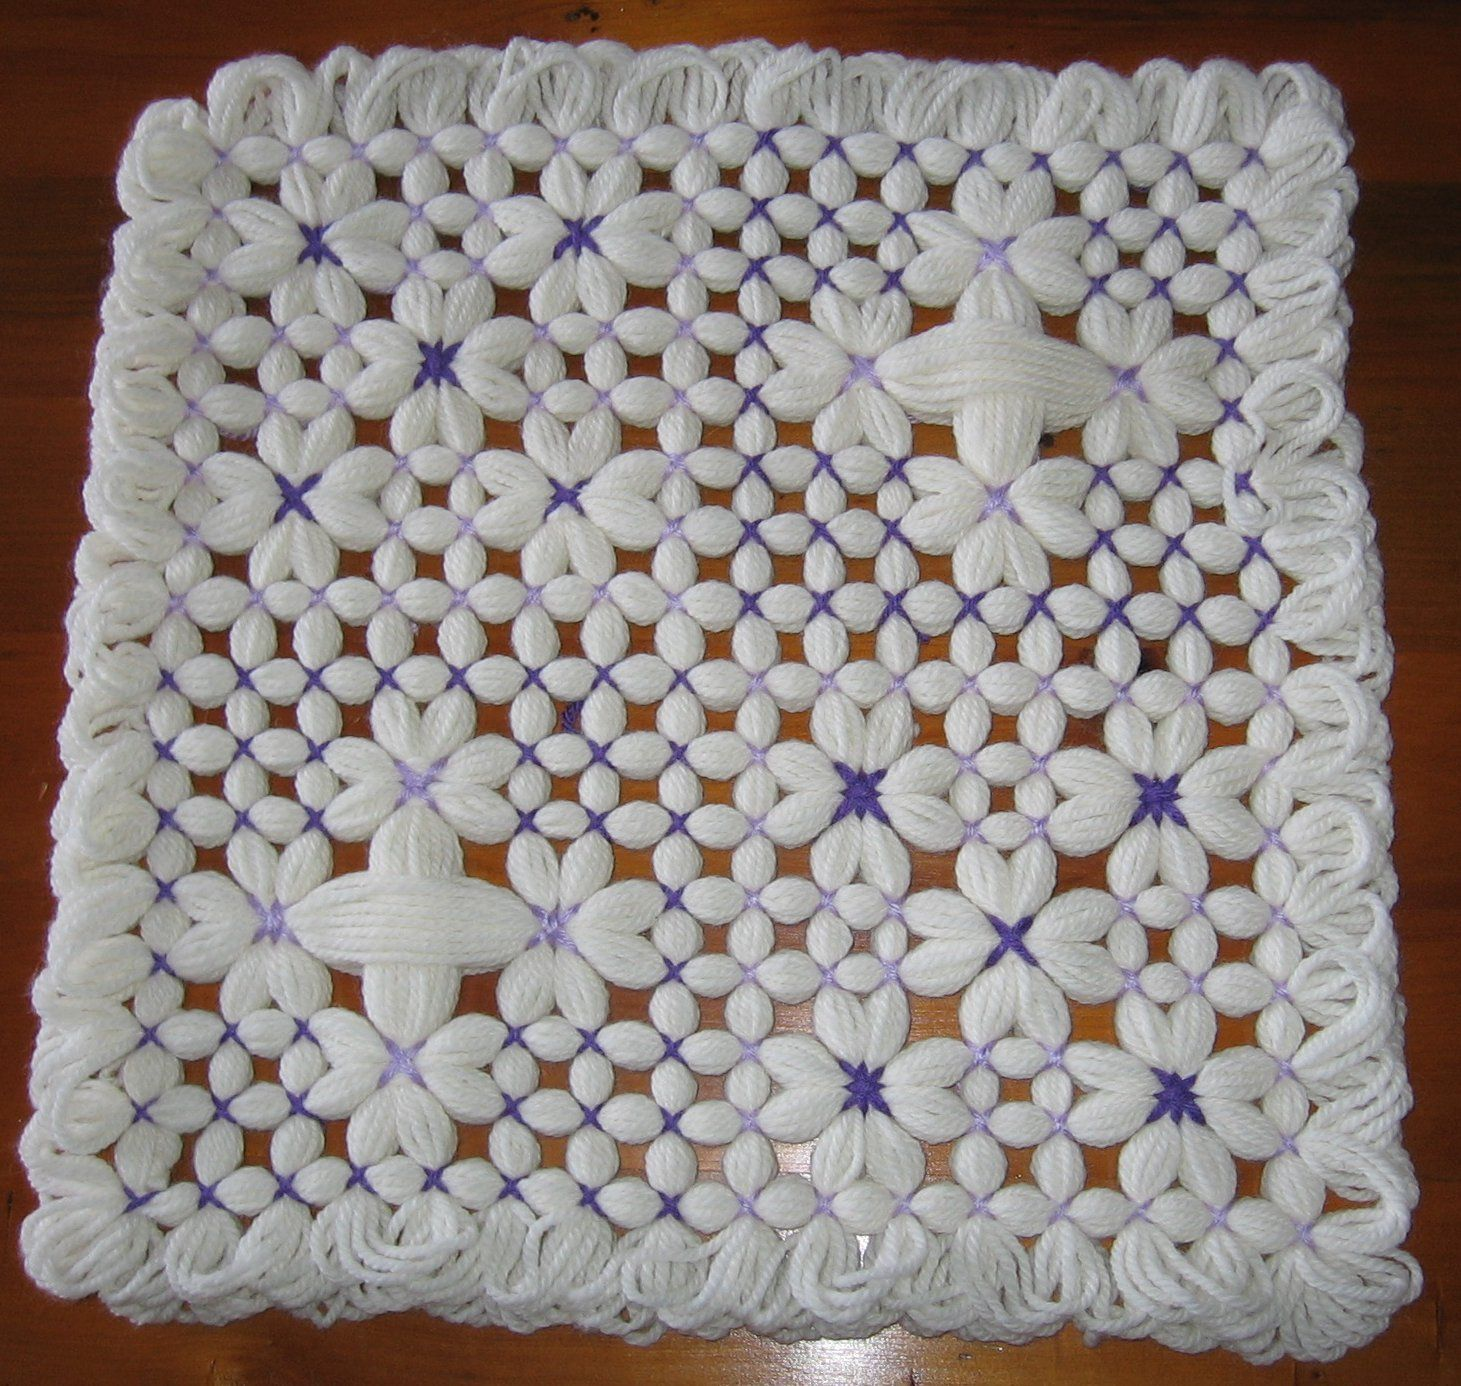 Knitting Loom Pom Pom Maker : The butterfly loom pompom cushion cover more idei